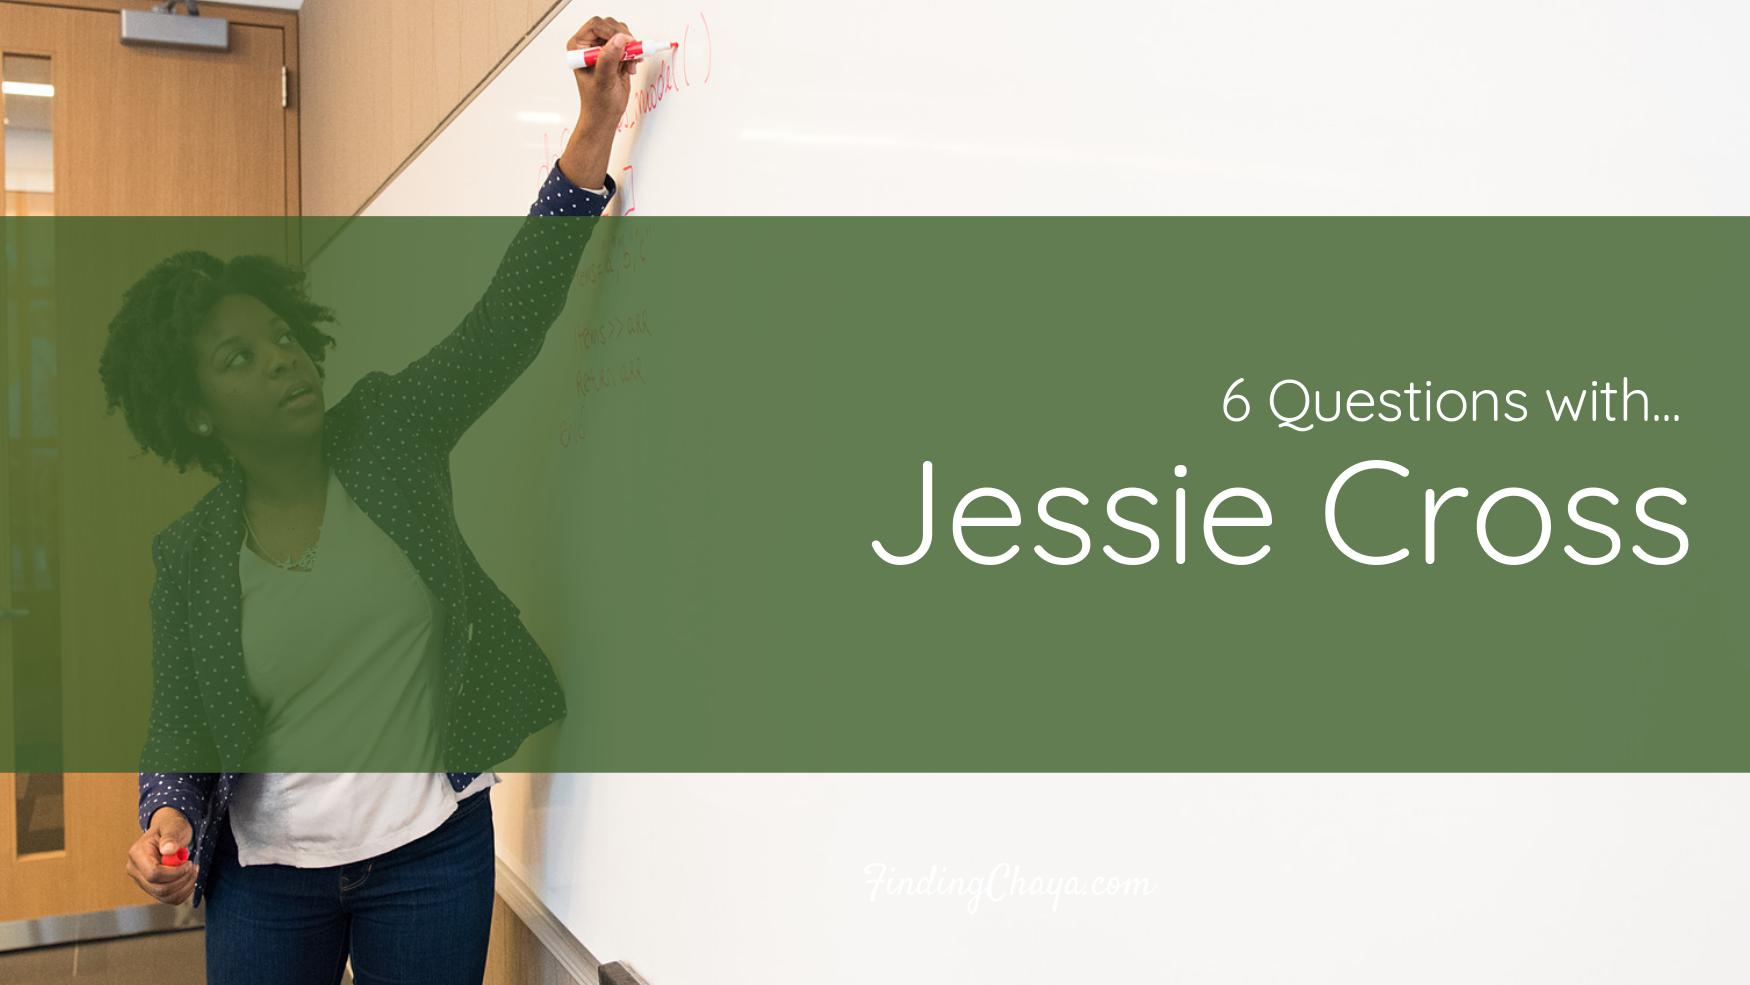 6 Questions with Jessie Cross